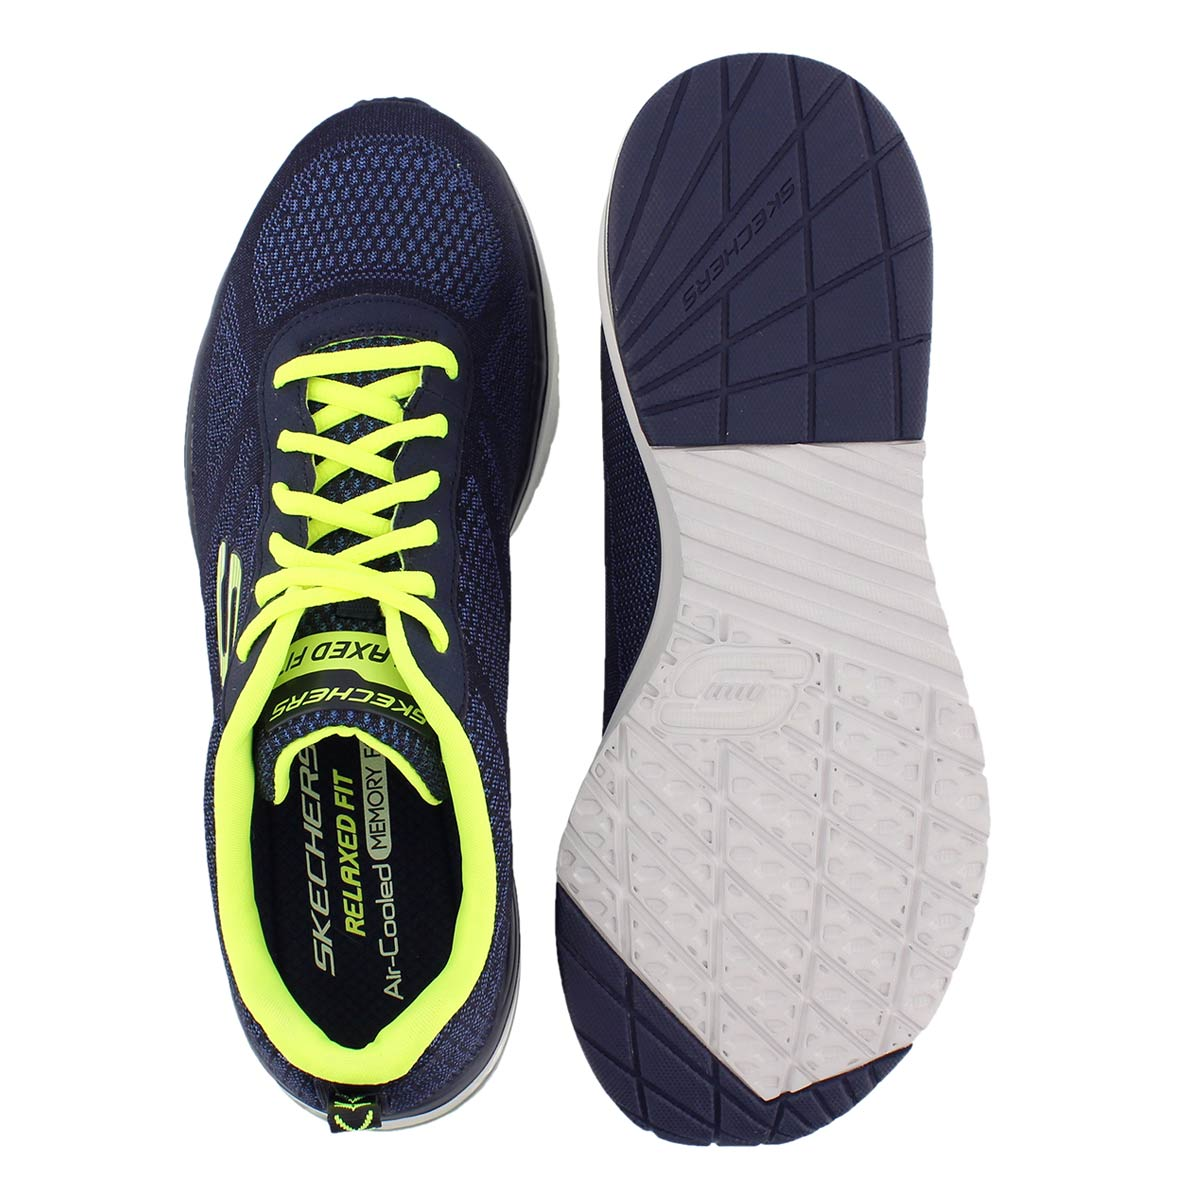 Mns Skech-Air Infinity nvy running shoe